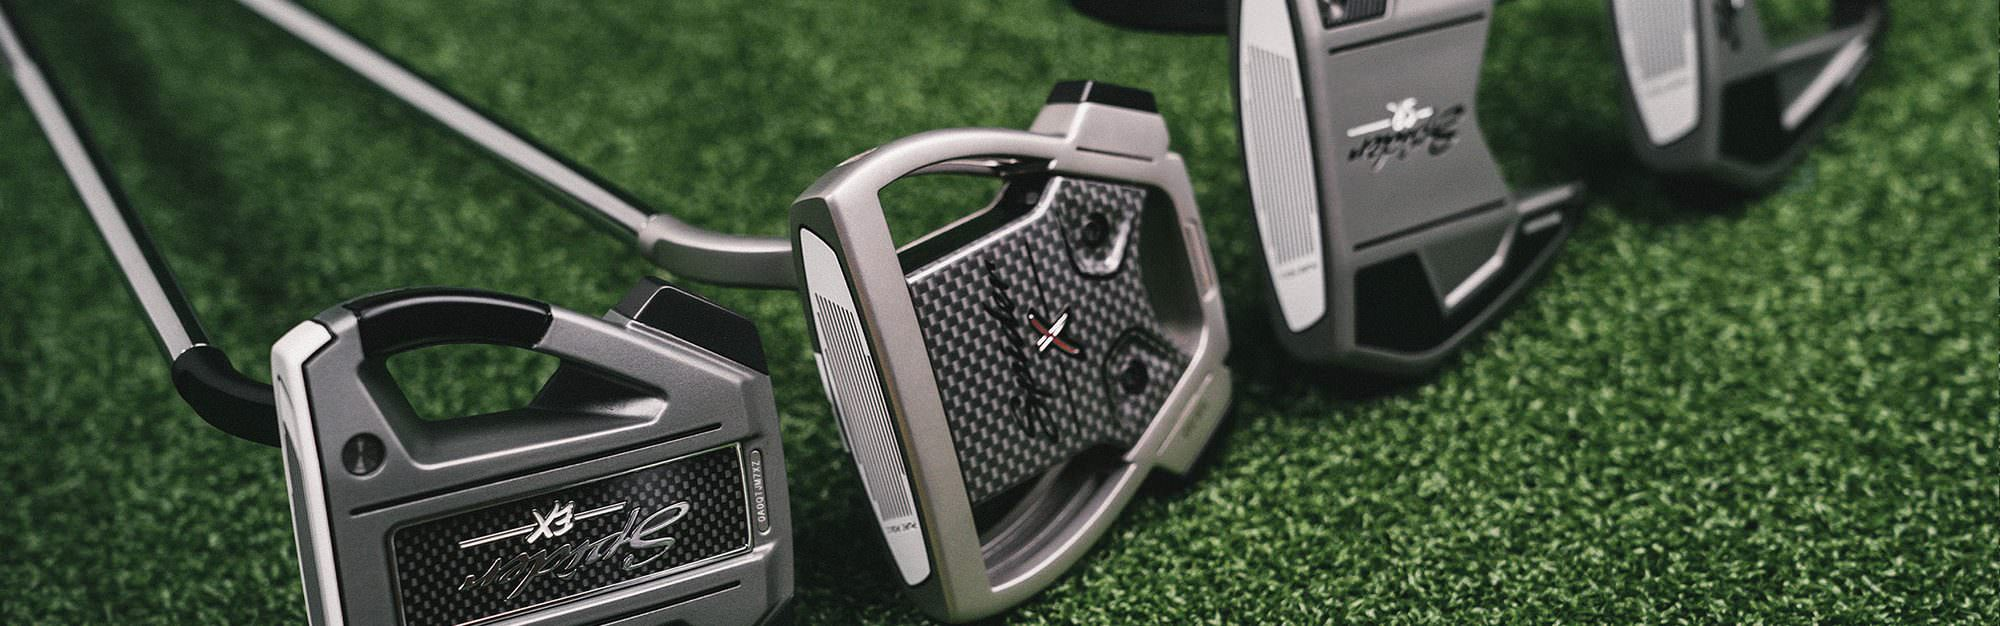 How do you make the most popular putter on tour even better? TaylorMade upgrade Spider range